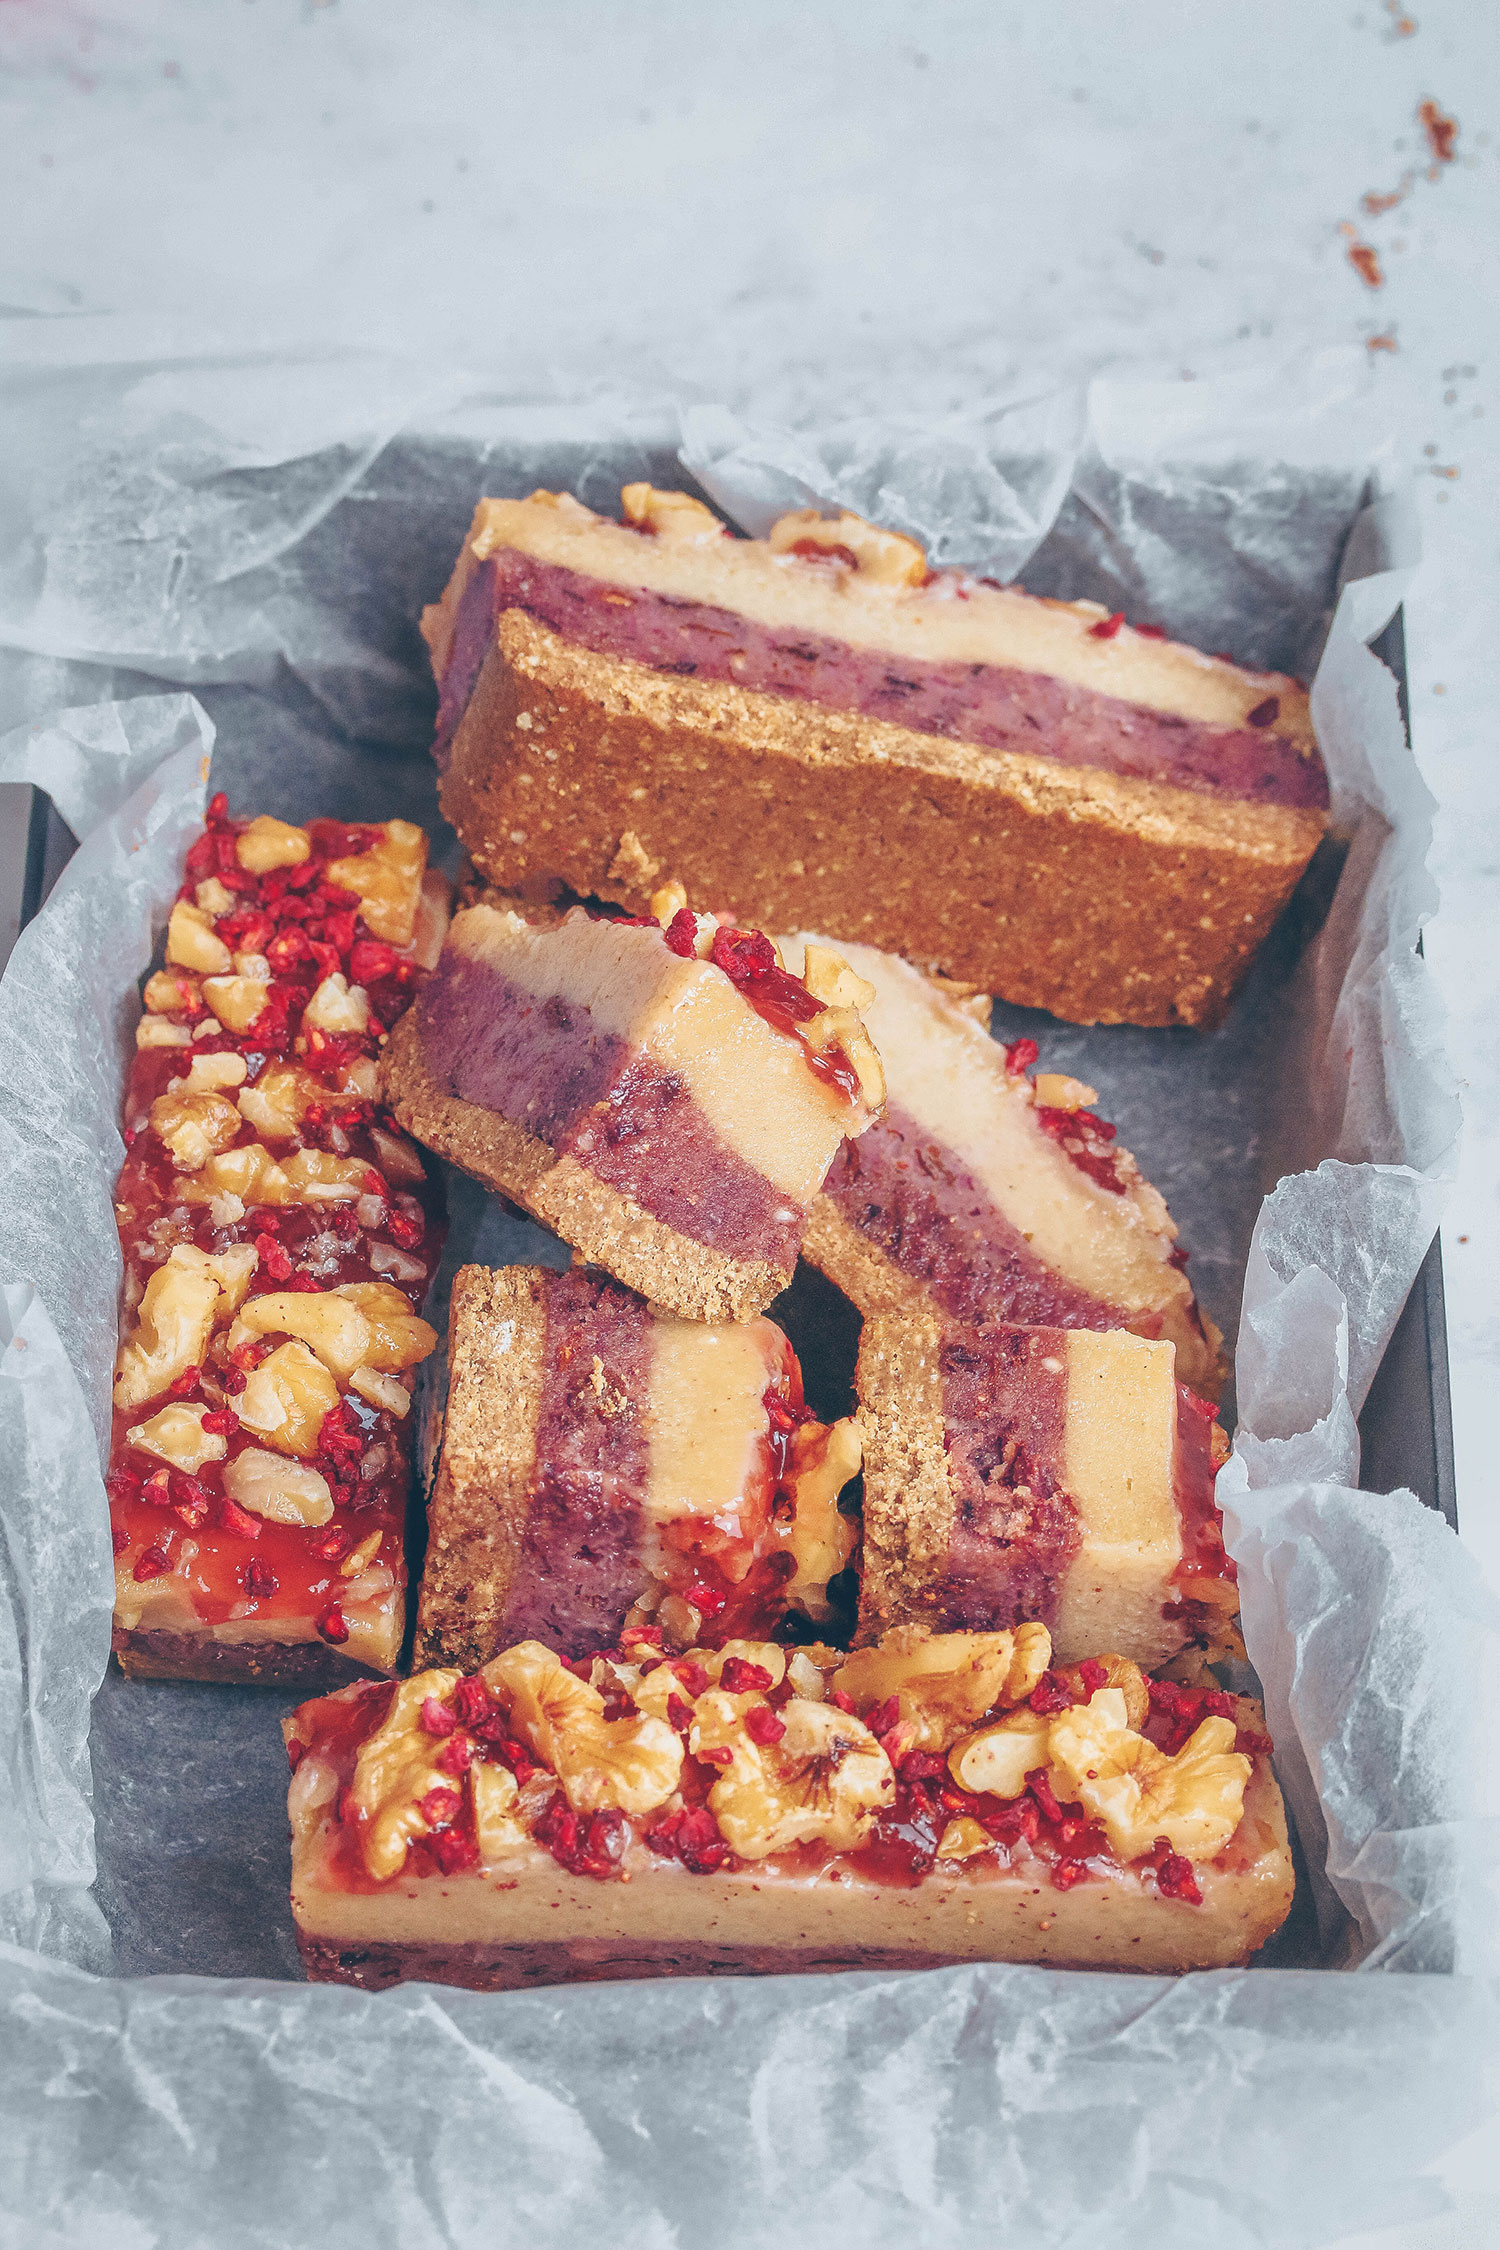 No-bake Walnut Strawberry Bars (Vegan & Gluten-free)